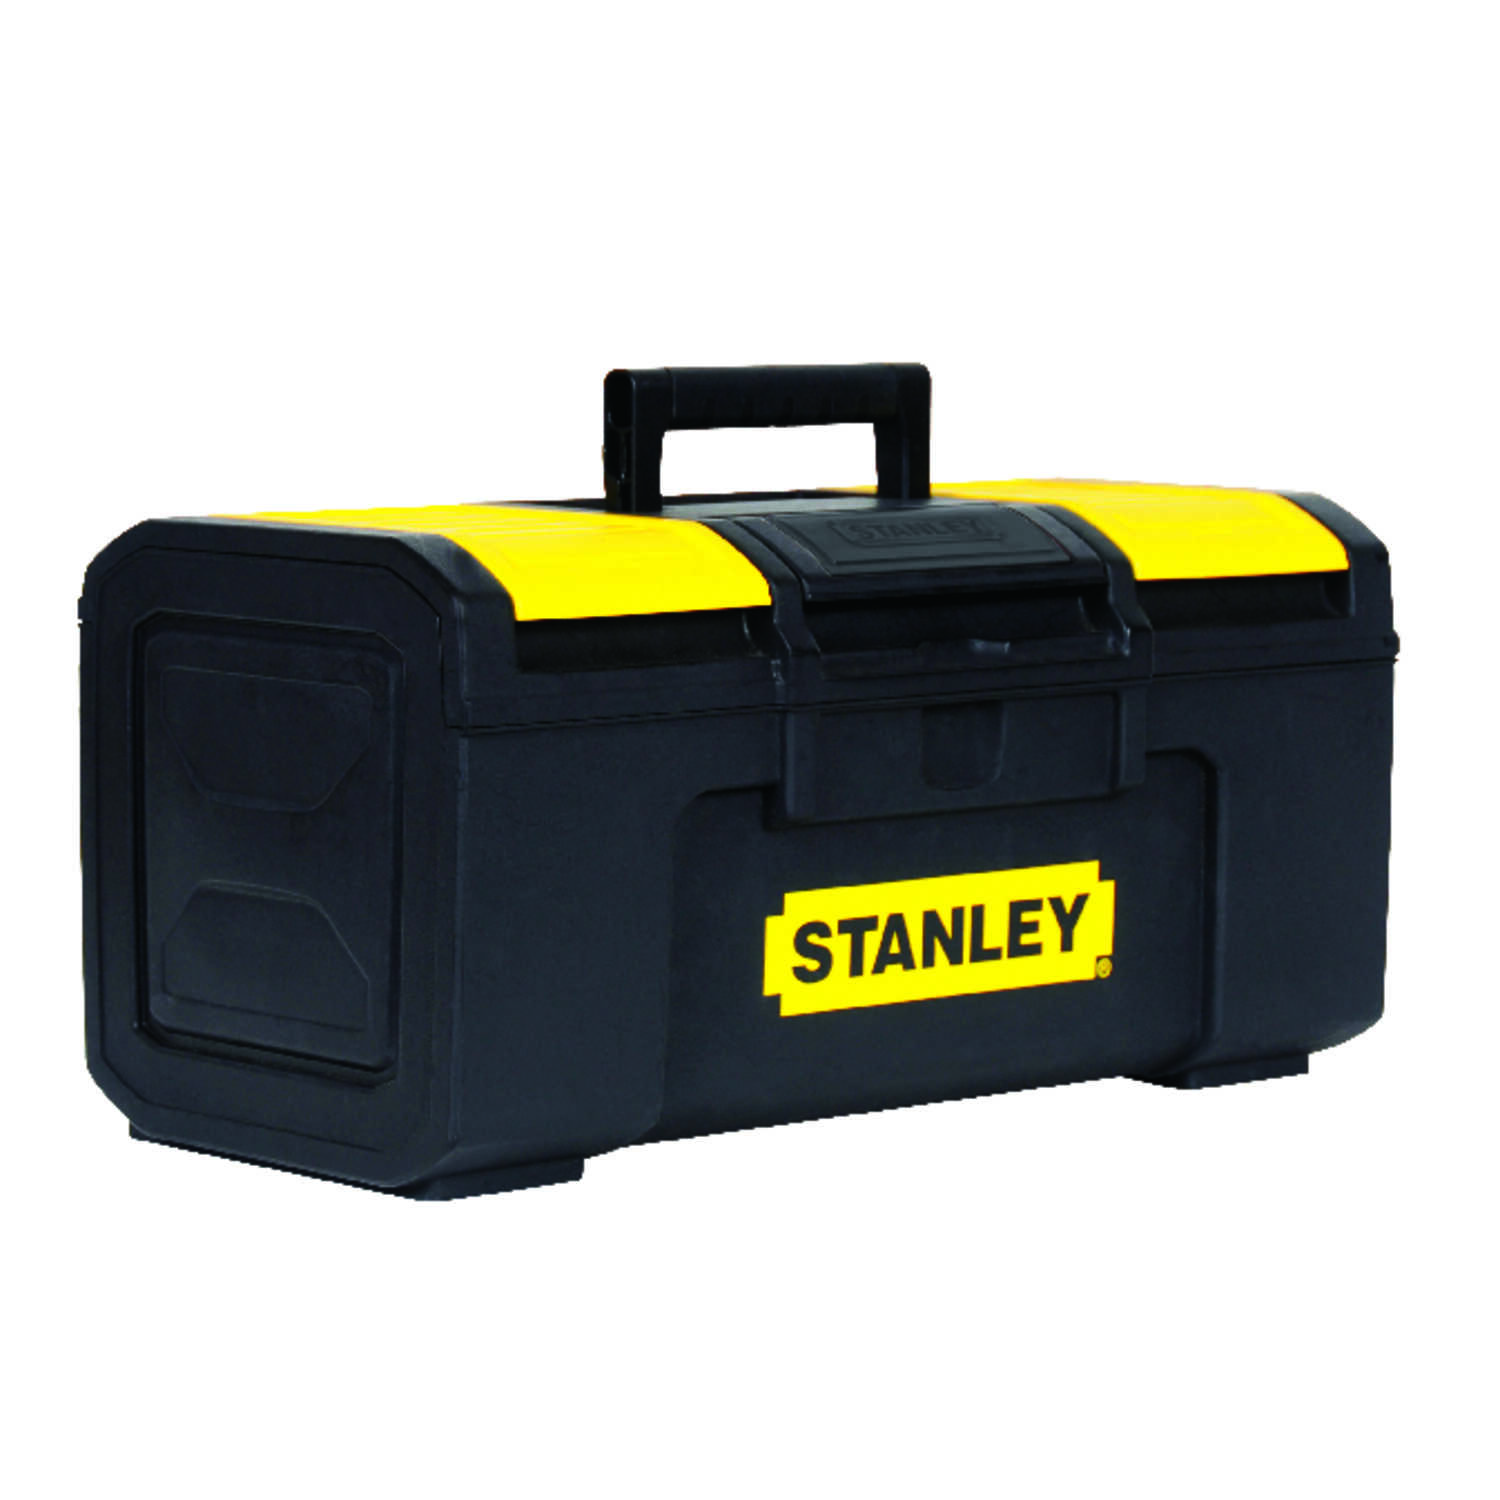 Stanley  23 in. Plastic  Tool Box  11 in. W x 10 in. H Black